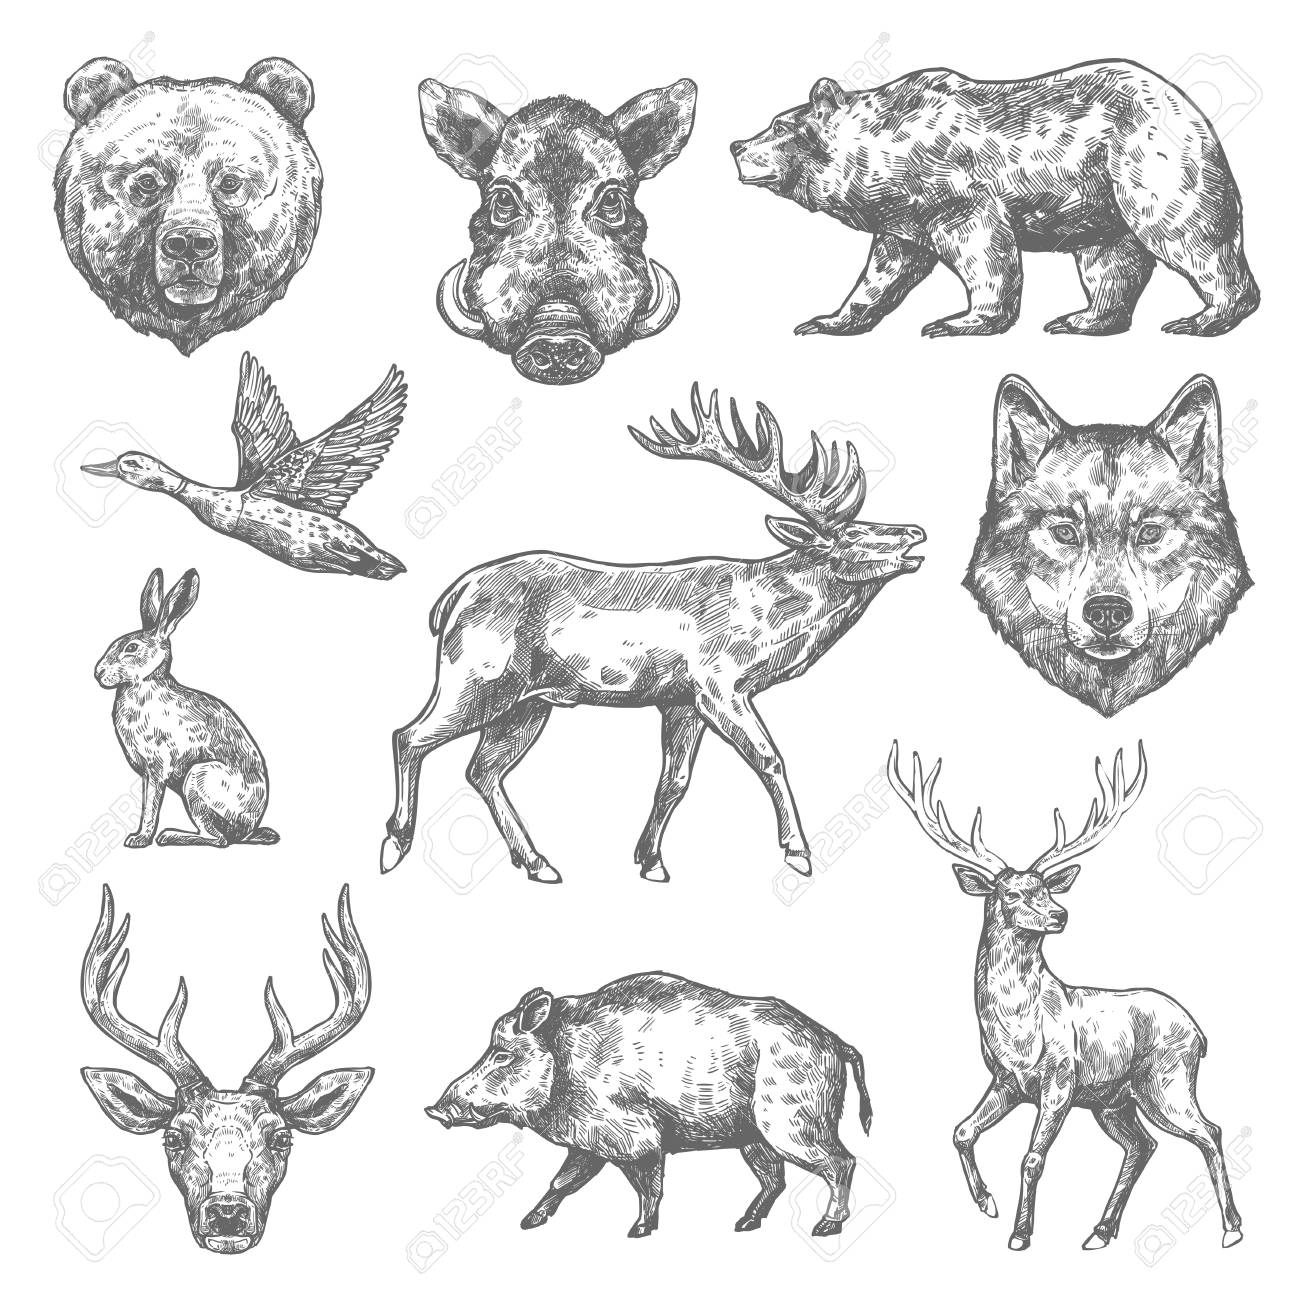 Vector Sketch Wild Animal Icons For Hunting Or Zoo Royalty Free Cliparts,  Vectors, And Stock Illustration. Image 95465109.